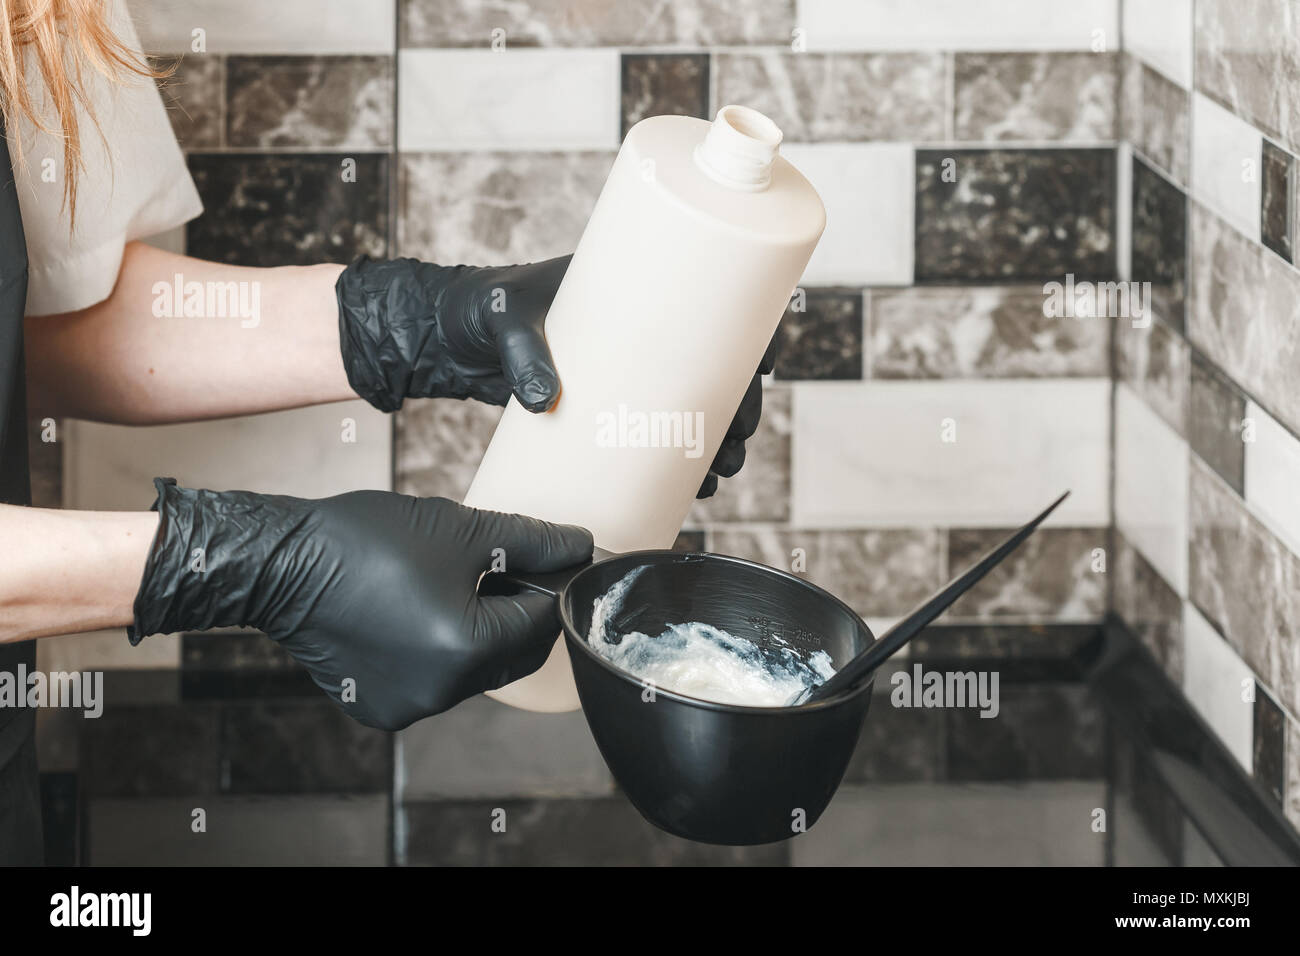 Hair stylist pouring an oxidant cream into the bowl preparing a coloring dye - Stock Image